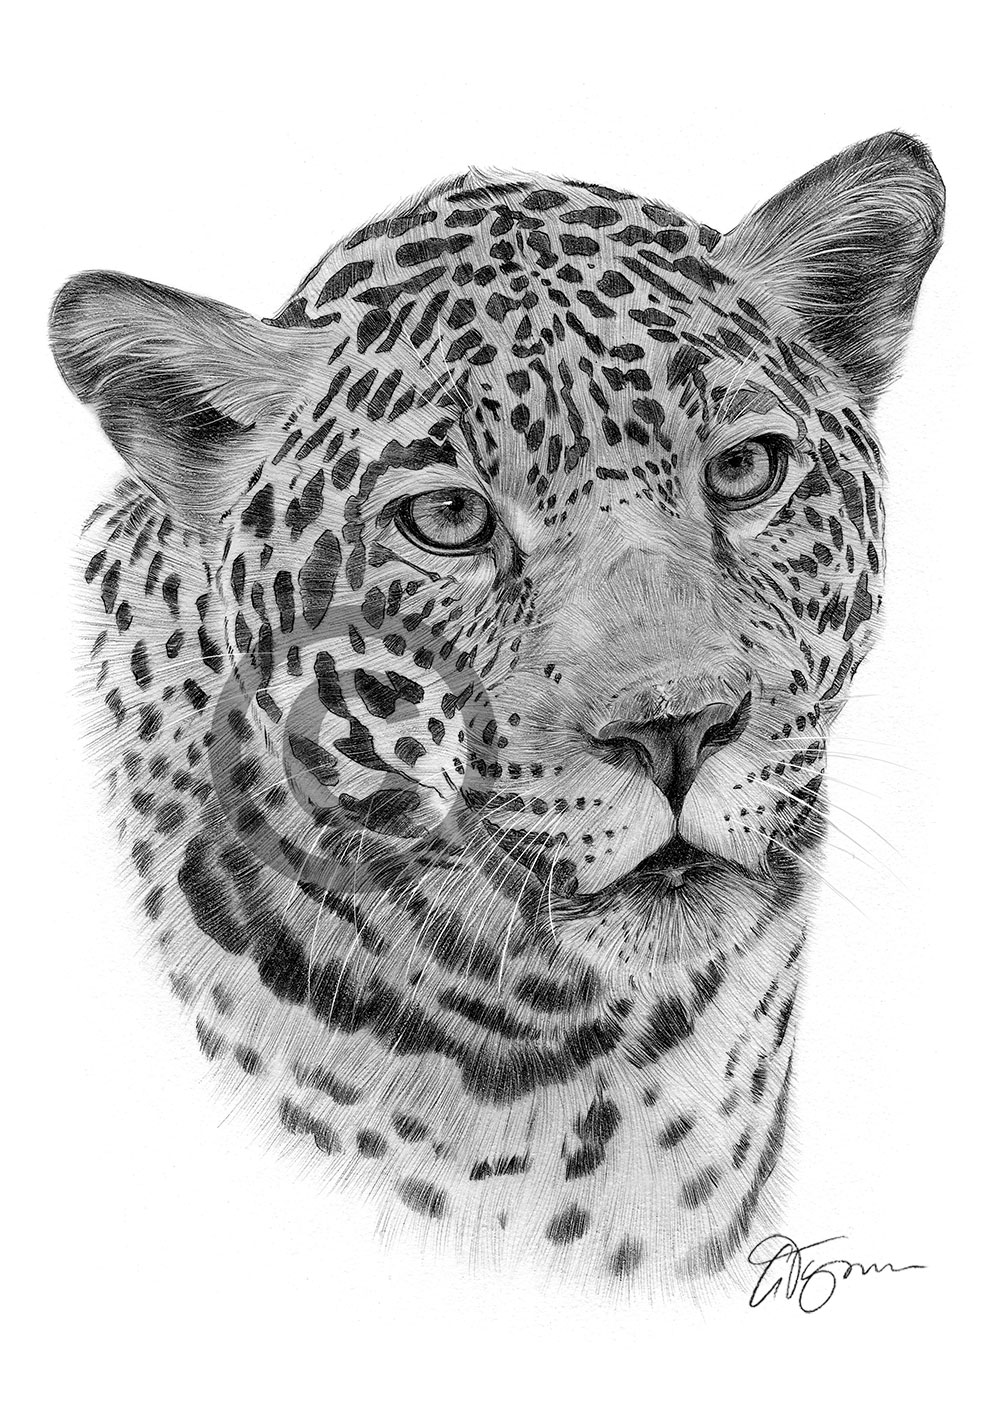 jaguar pencil drawing by artist gary tymon